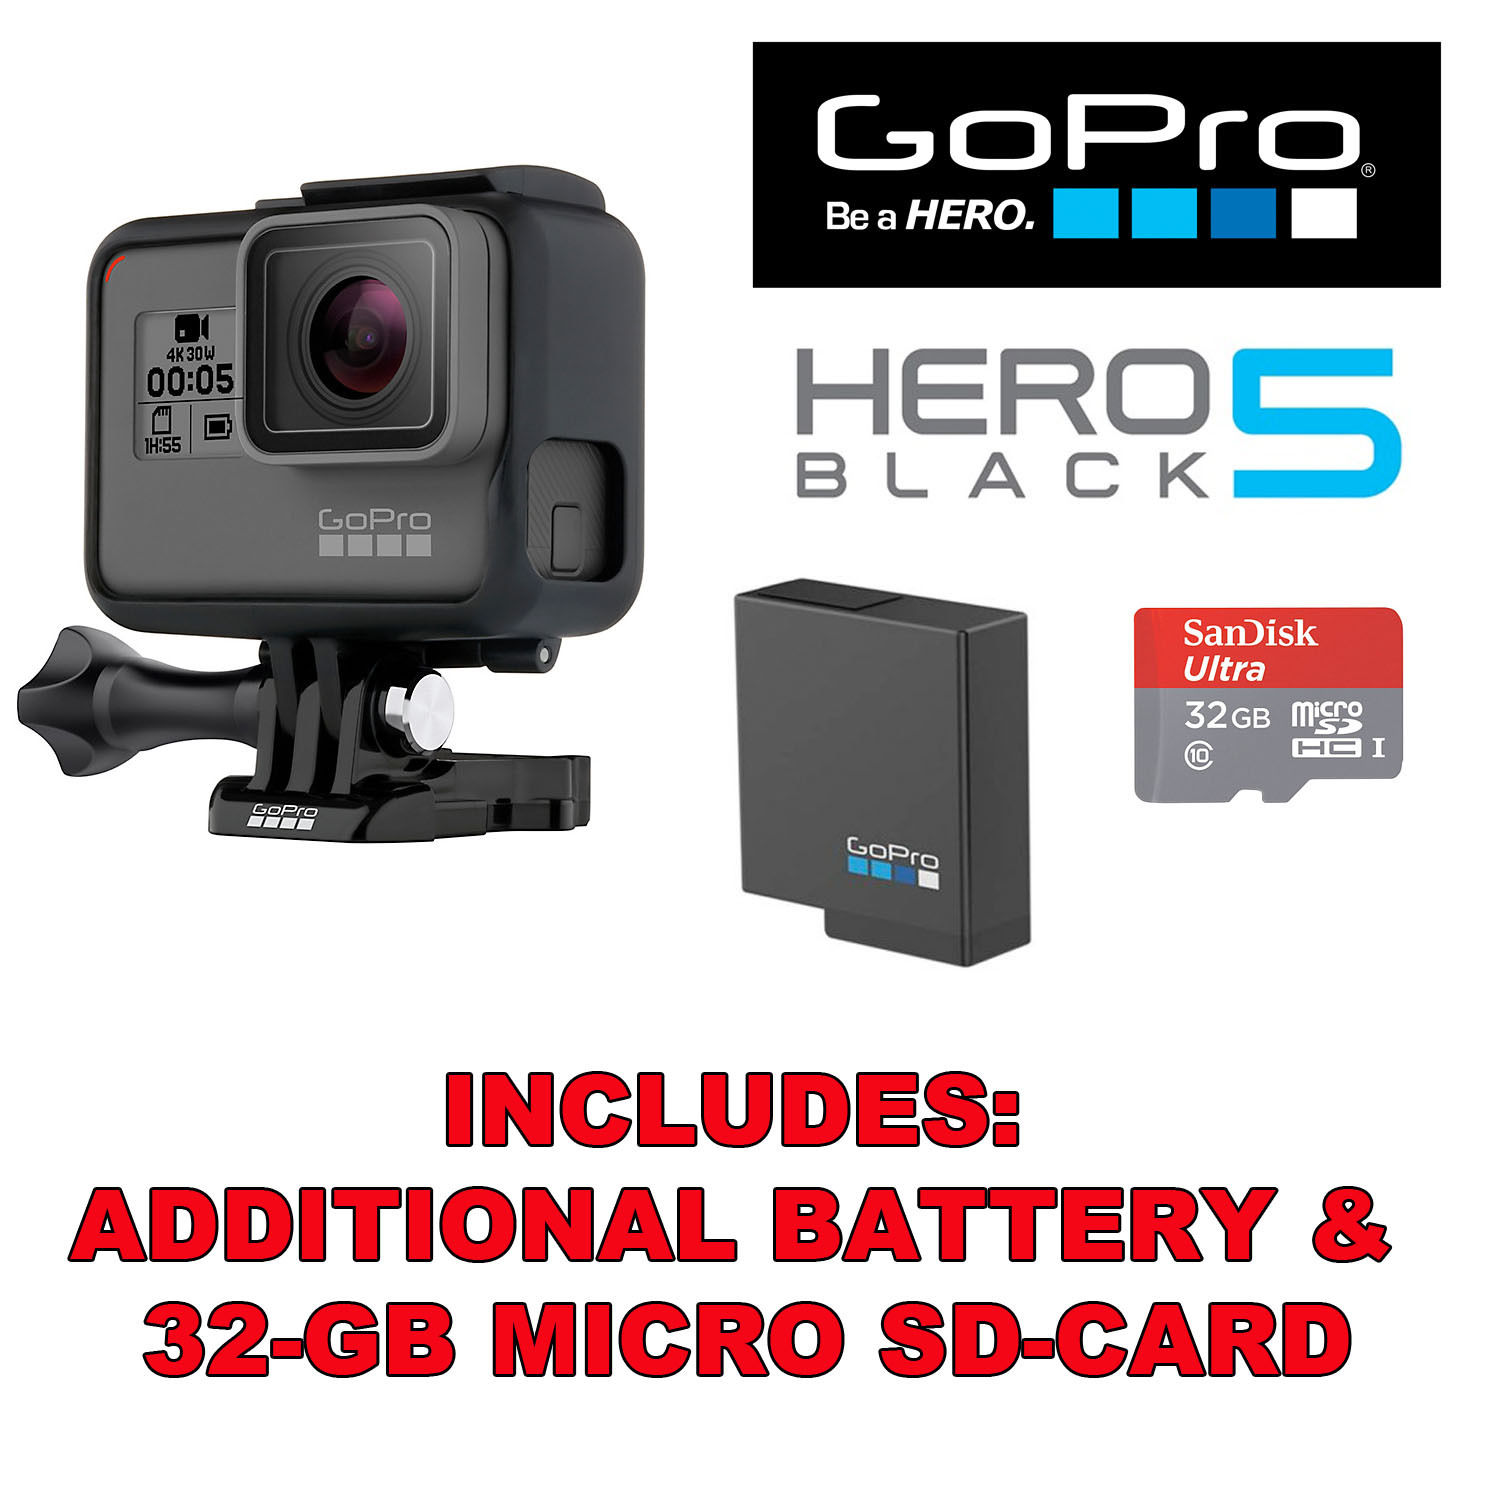 GoPro HERO5 Black Model 4K HD Watertight Exercise Digicam +32GB SD-Card + Battery